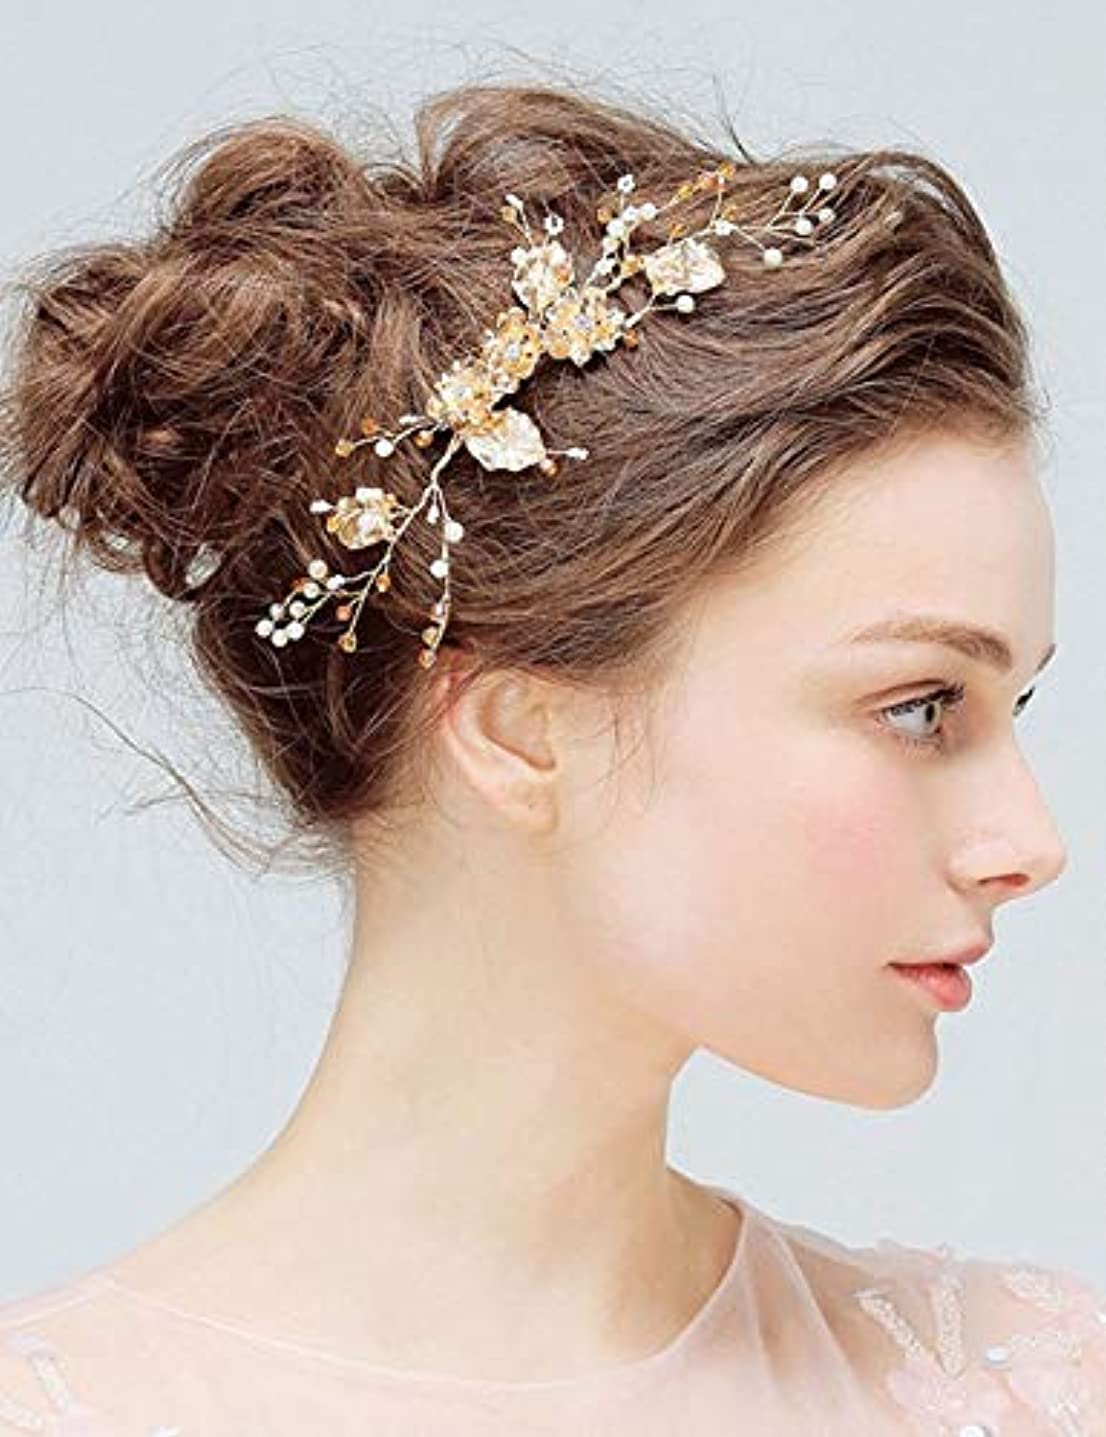 ミッション生命体豊富Deniferymakeup Bridal Comb Floral Gold Crystal Leaf Bridal Hair Comb Vintage Inspired Hairpiece Crystal Comb Veil...